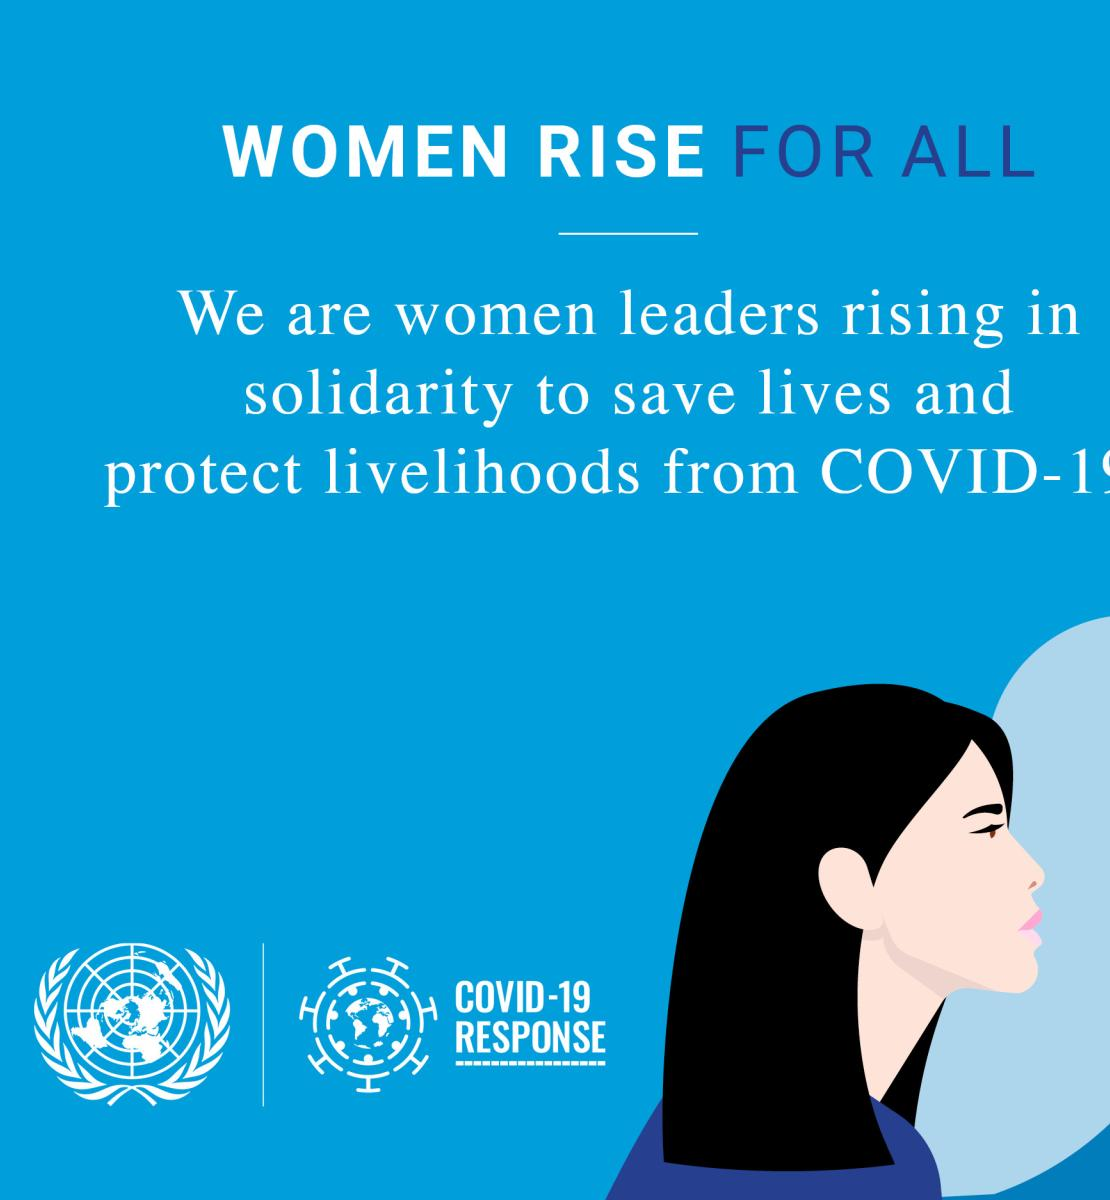 Graphic shows animated diverse group of women towards the right with the text Women Rise for All. We are women leaders rising in solidarity to save lives and protect livelihoods from COVID-19.